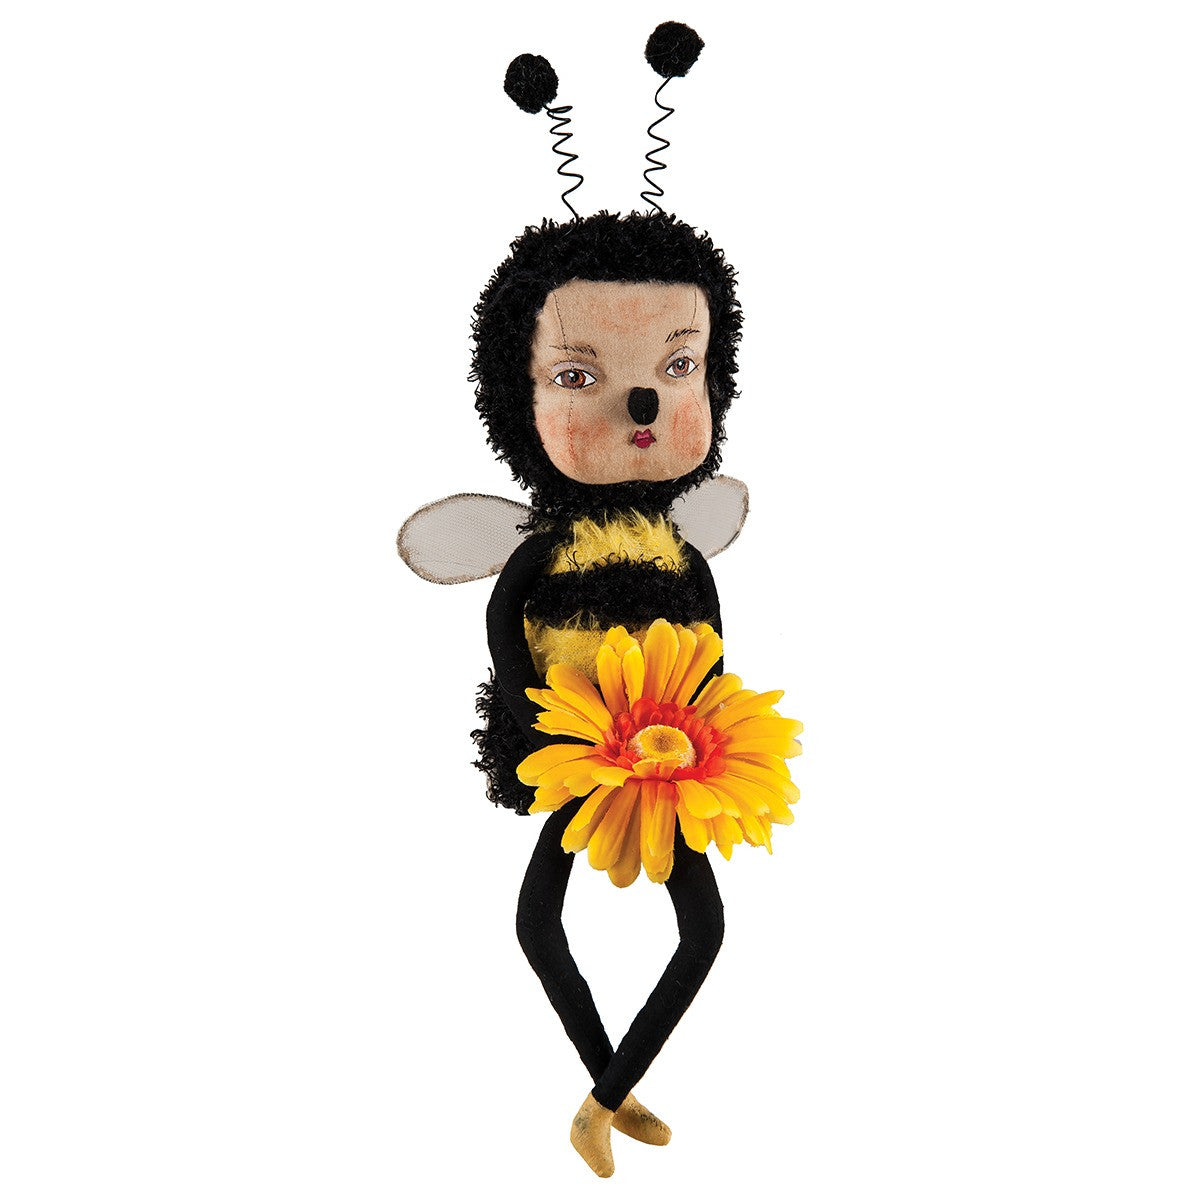 Bea Bumblebee Doll by Joe Spencer